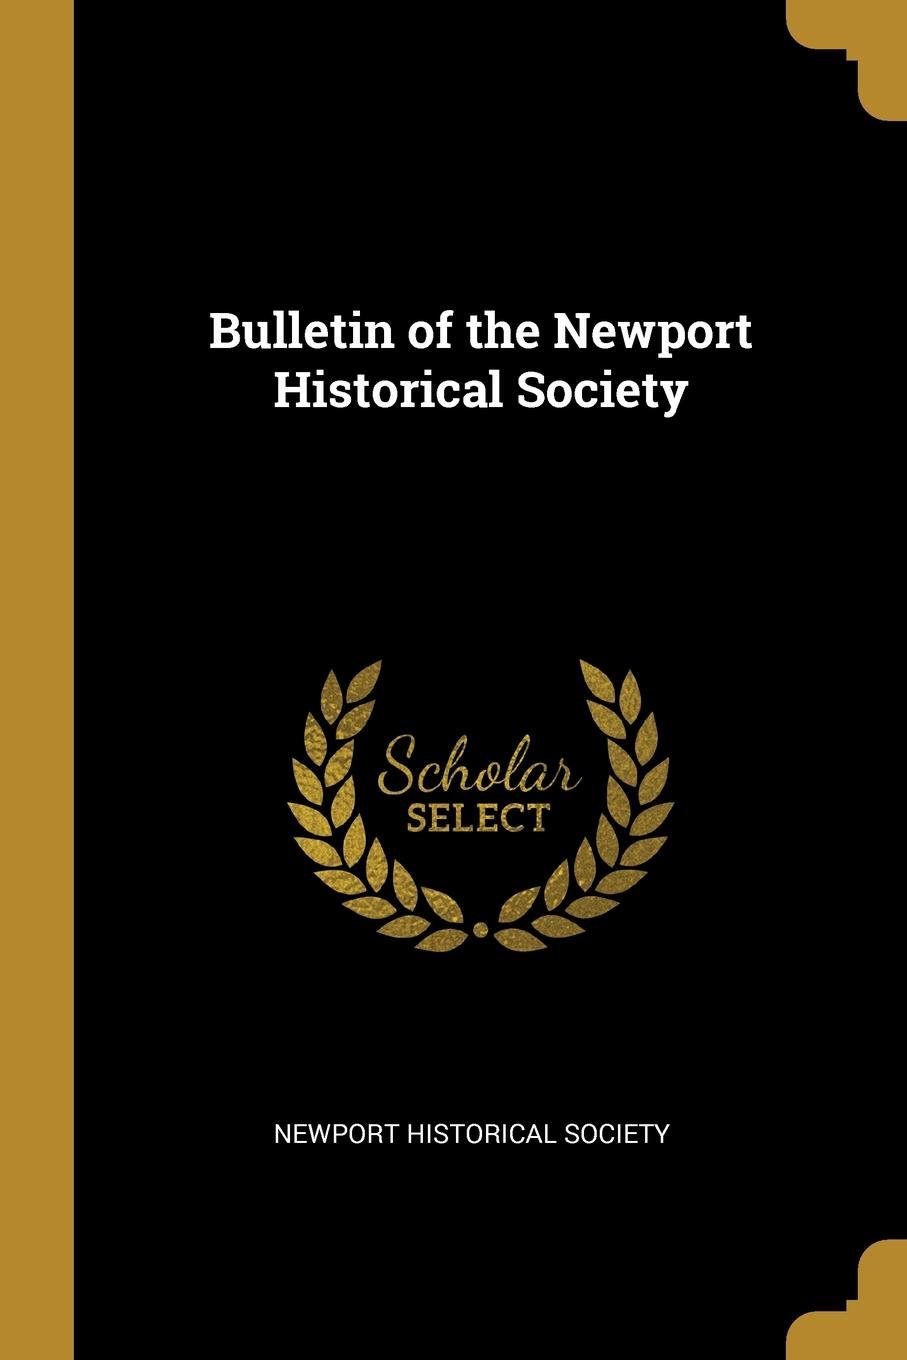 Newport Historical Society. Bulletin of the Newport Historical Society